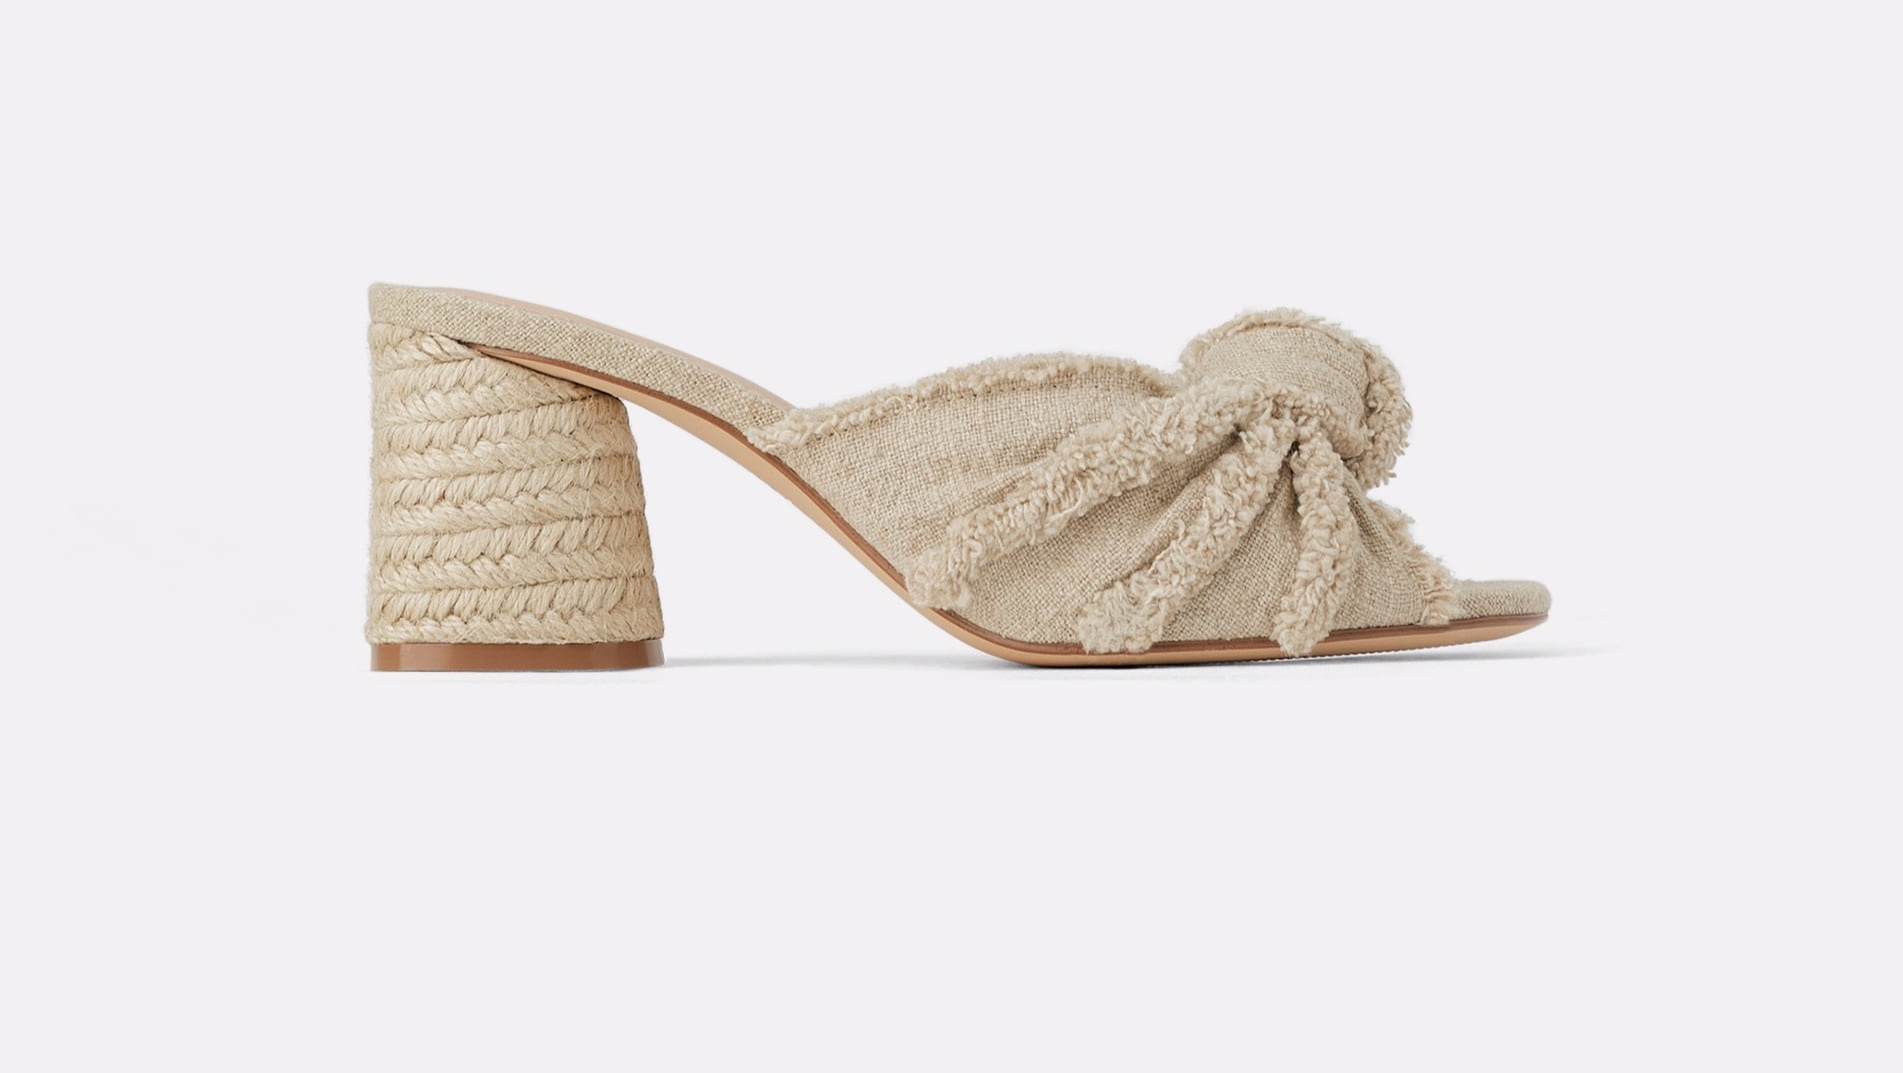 Zara knotted mules